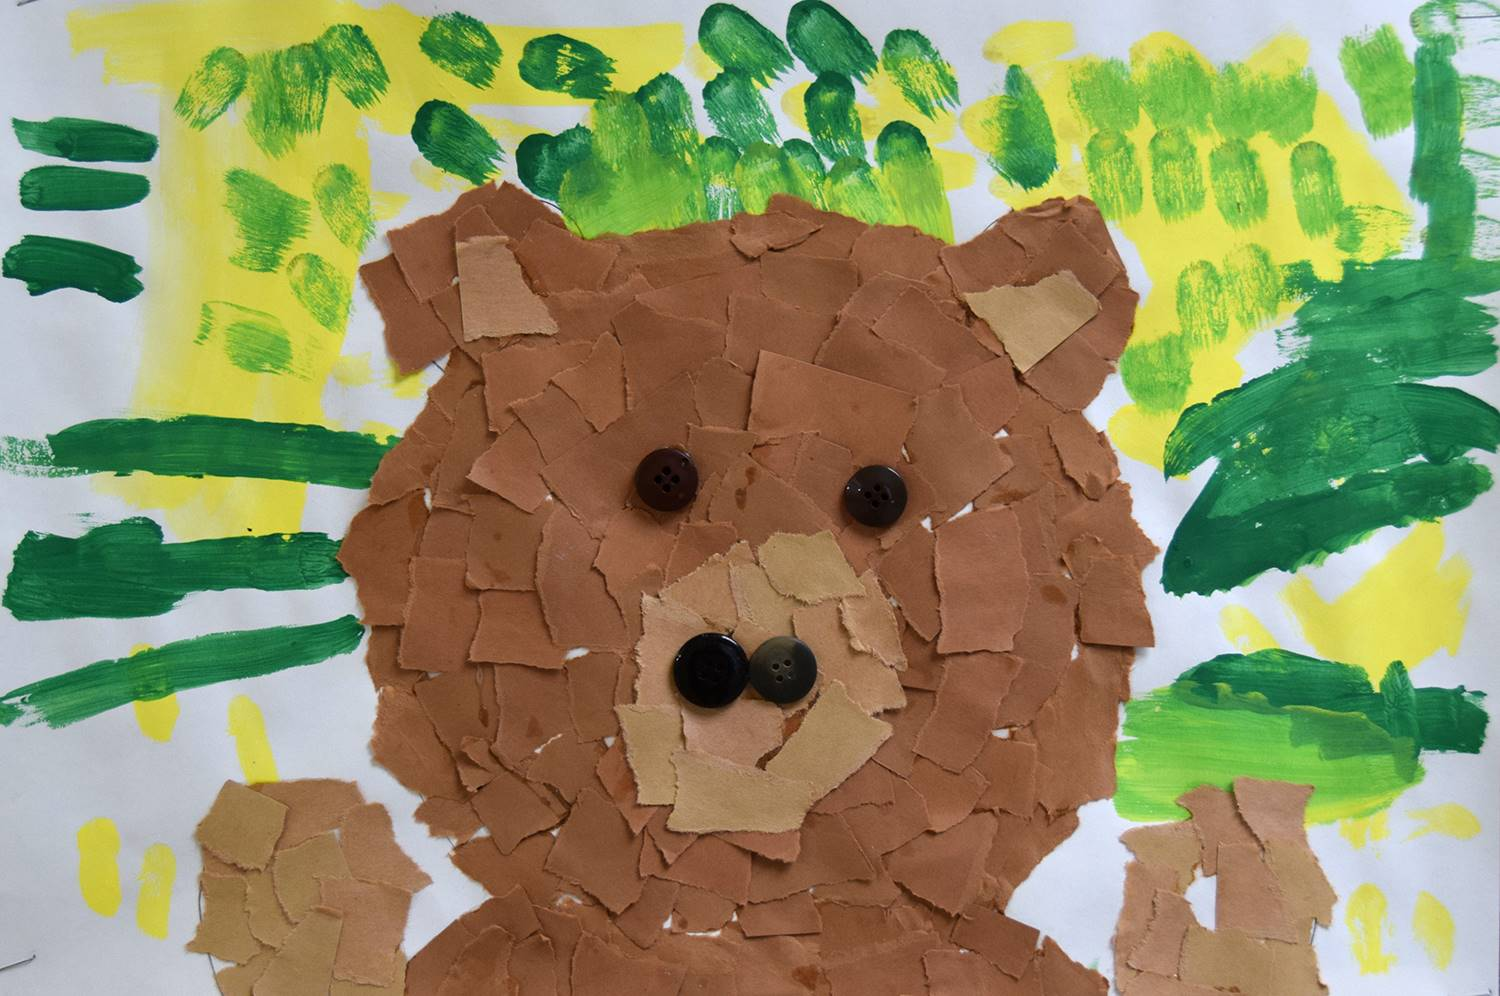 A brown bear made out of torn construction paper on a yellow and green background was created by Jos